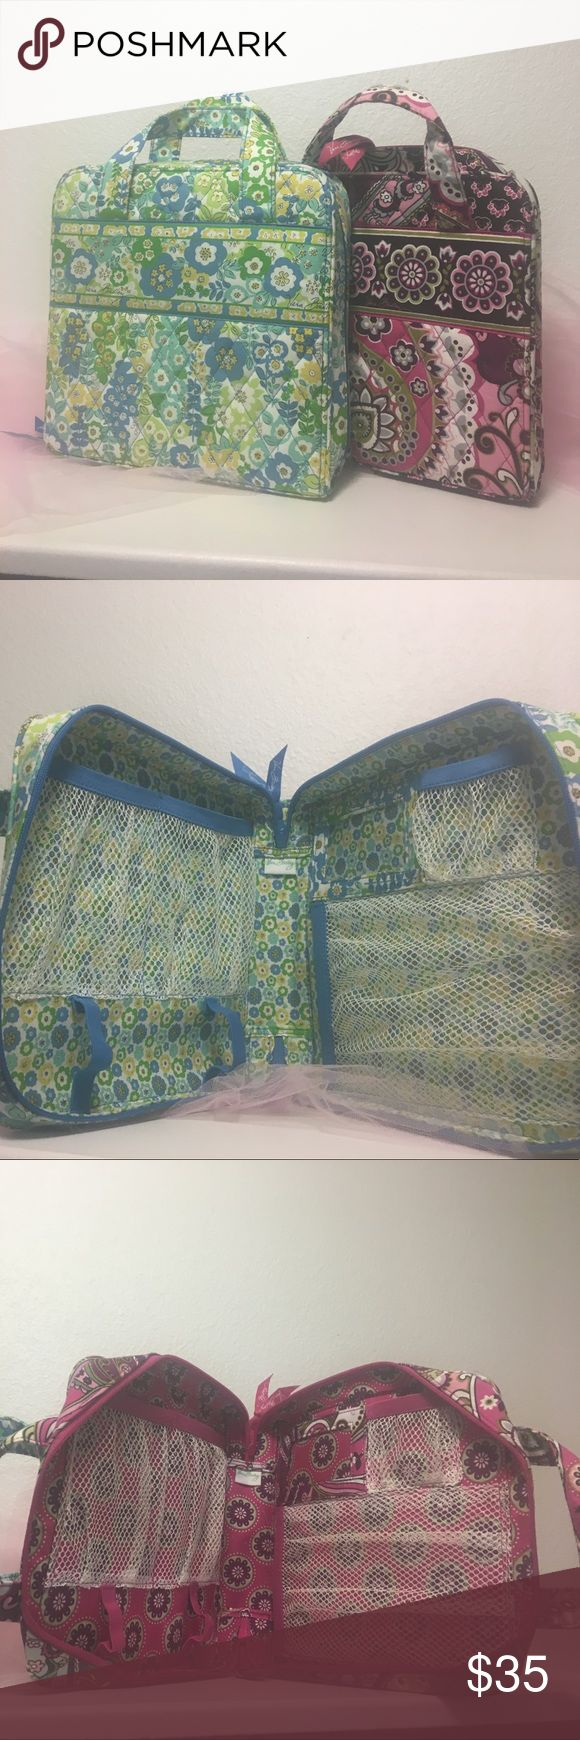 Two Vera Bradley Tech organizers. WILLING TO NEGOTIATE FOR A QUICK SALE!! In great condition. In the patterns English meadow and Very Berry Paisley. 35$ FOR BOTH-CAN BE LISTED SEPARATELY UPON REQUEST!! Great for First Aid kits or an emergency bag to keep at work or in the car! Vera Bradley Bags Travel Bags